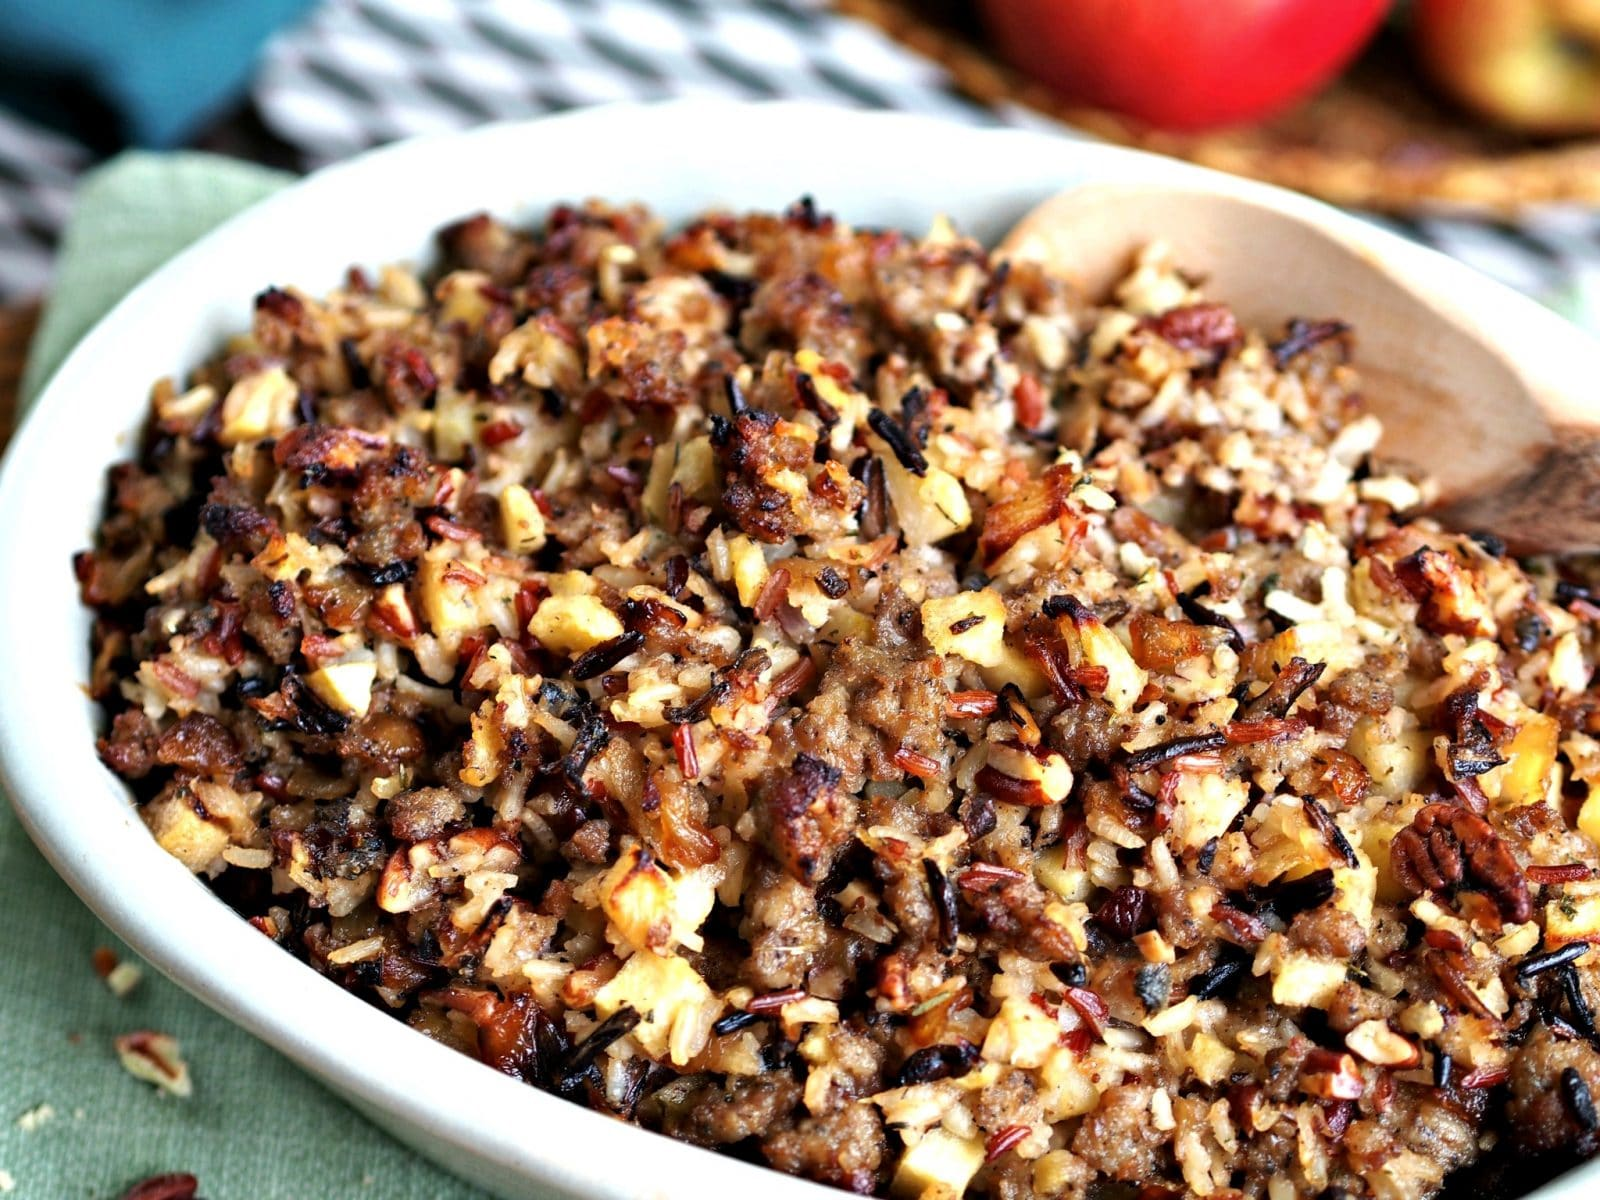 Wild Rice, Jones Sausage & Apple Stuffing is not just for Thanksgiving. Wild rice, sausage, apples, pecans & a splash of Southern Comfort - perfection. simplysated